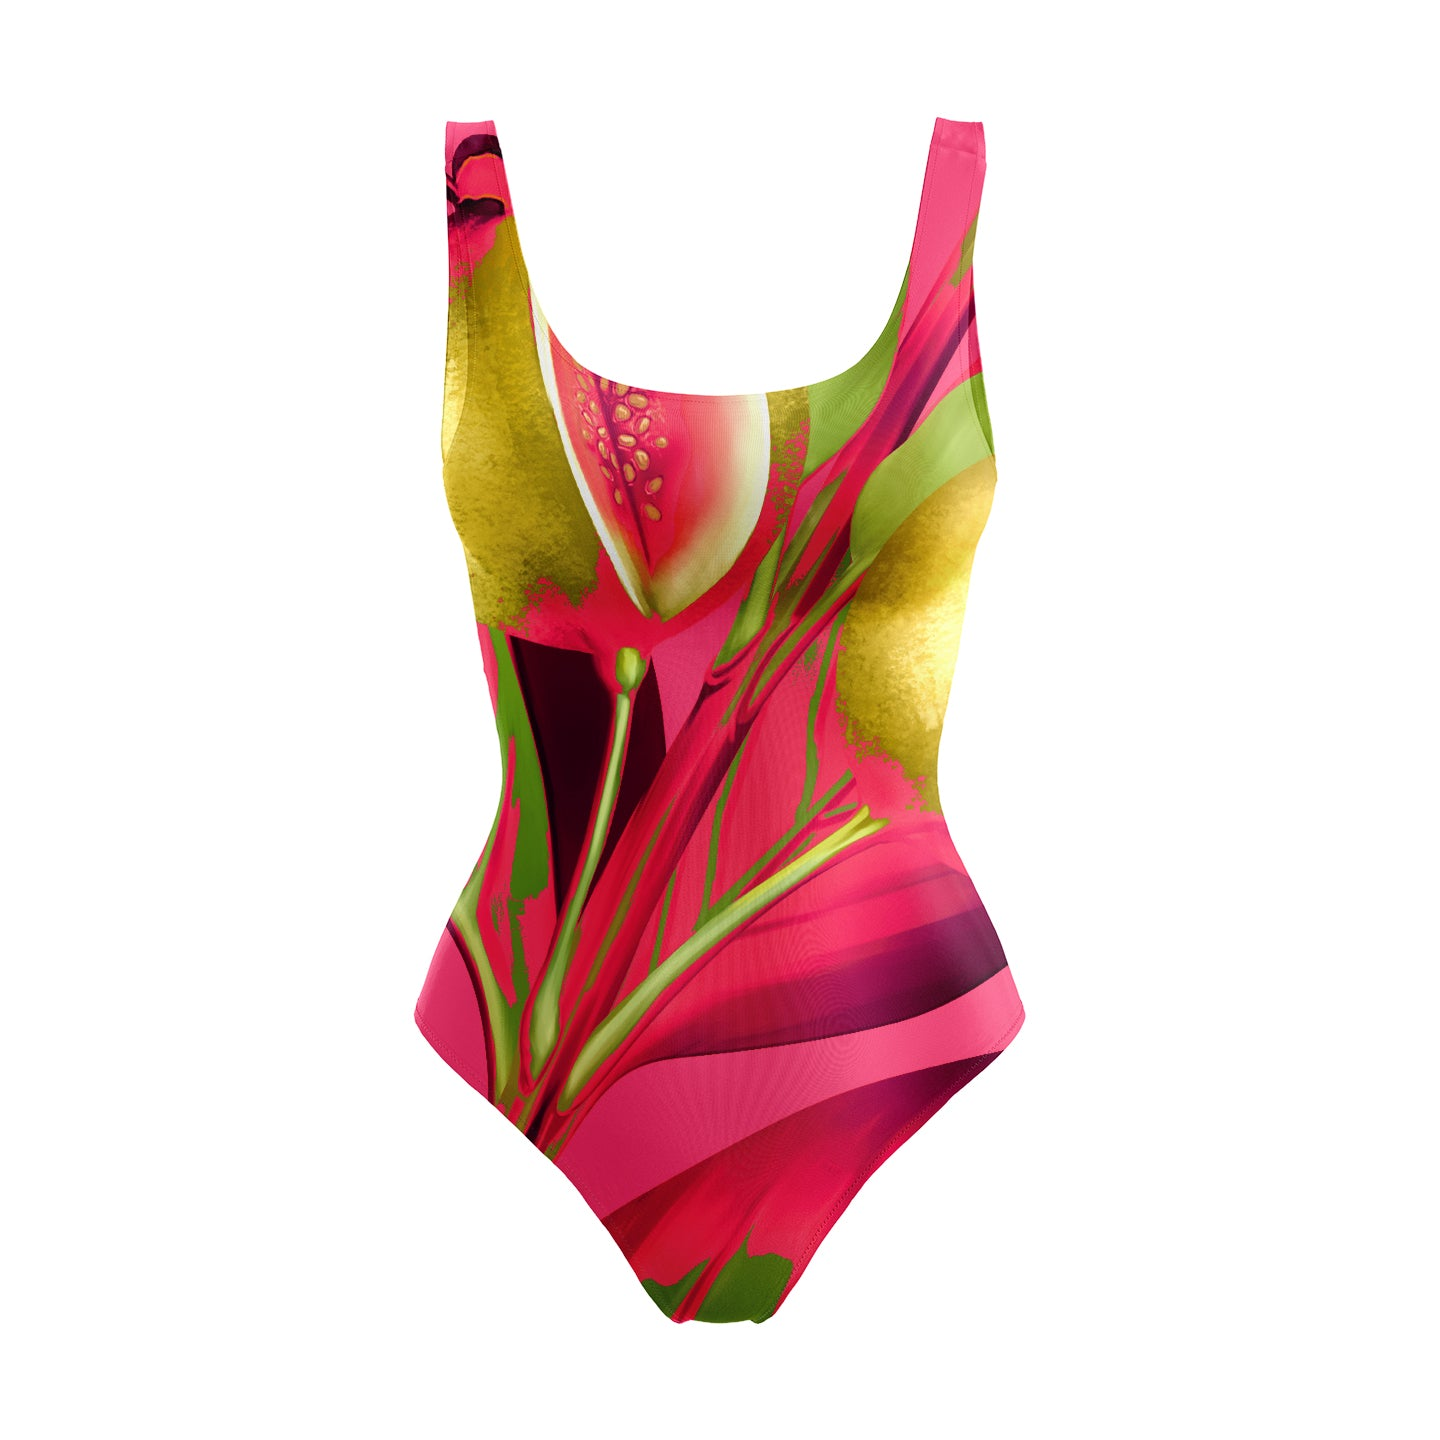 THE GUAJAVA SWIMSUIT